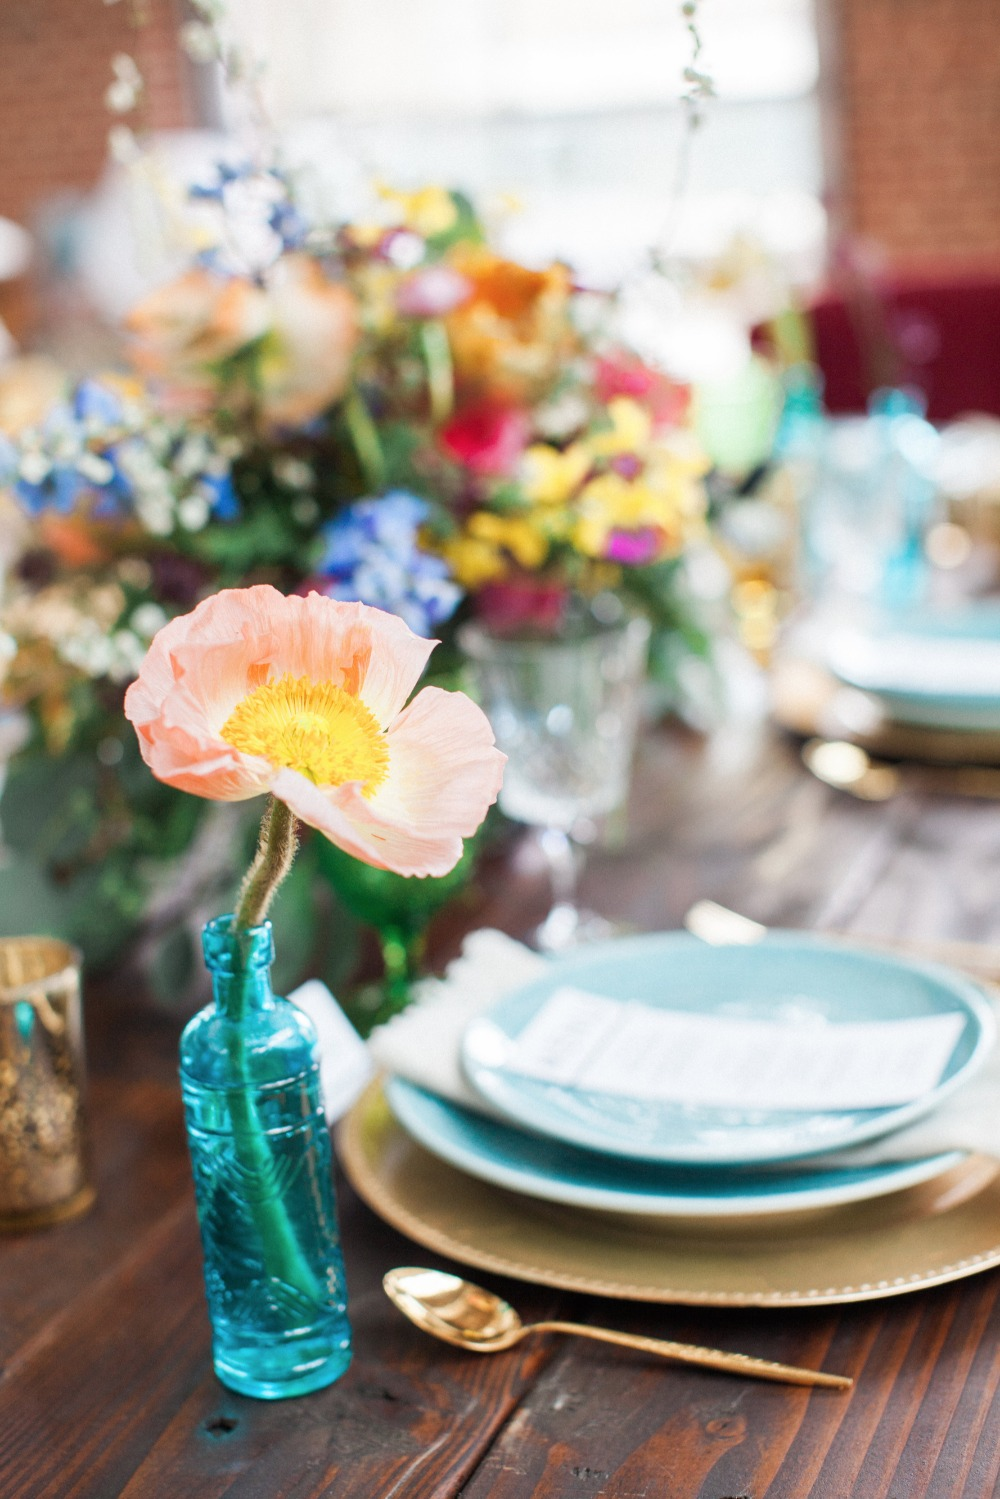 Centerpiece decor and details